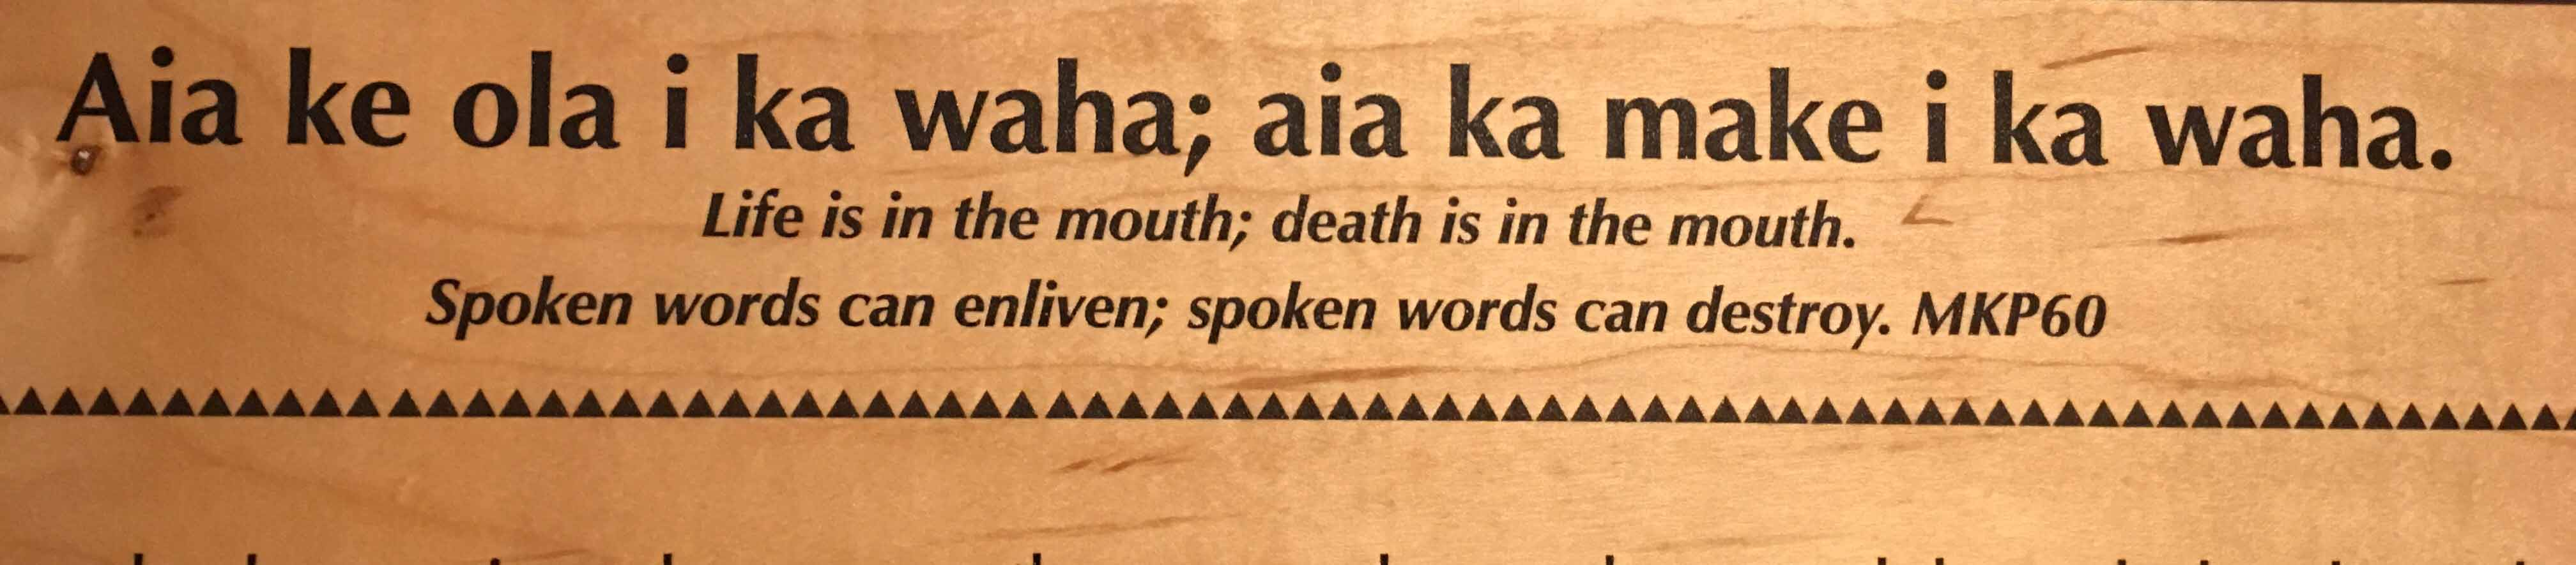 Life and death can both come from the mouth